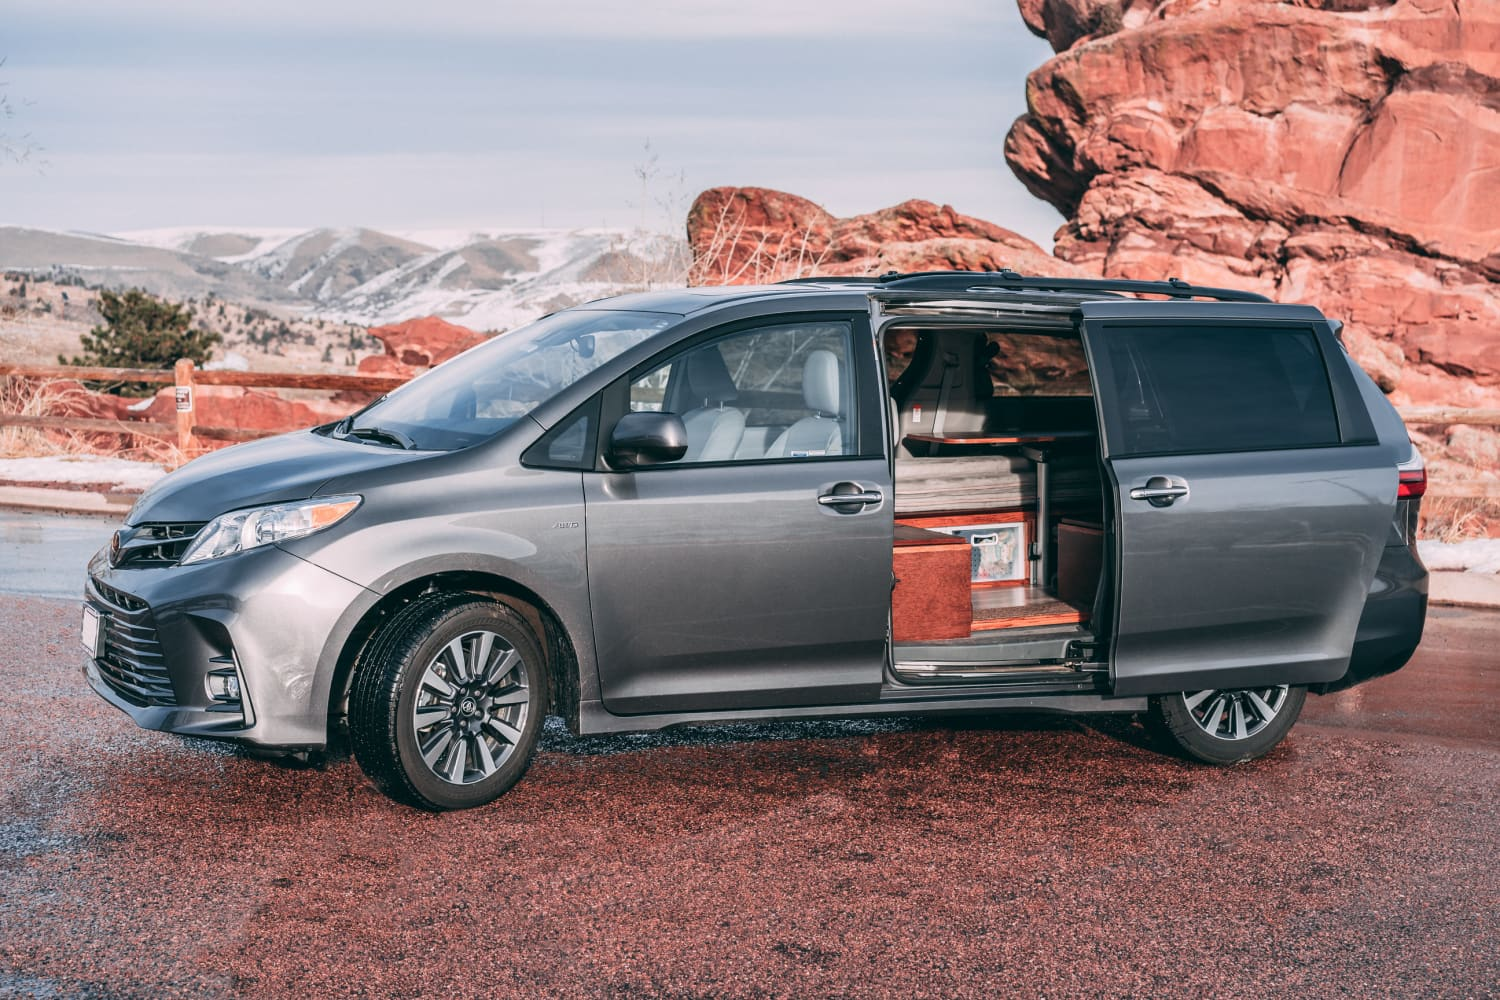 This Company Converts Minivans Into Two-Person Campers Starting at $8,500